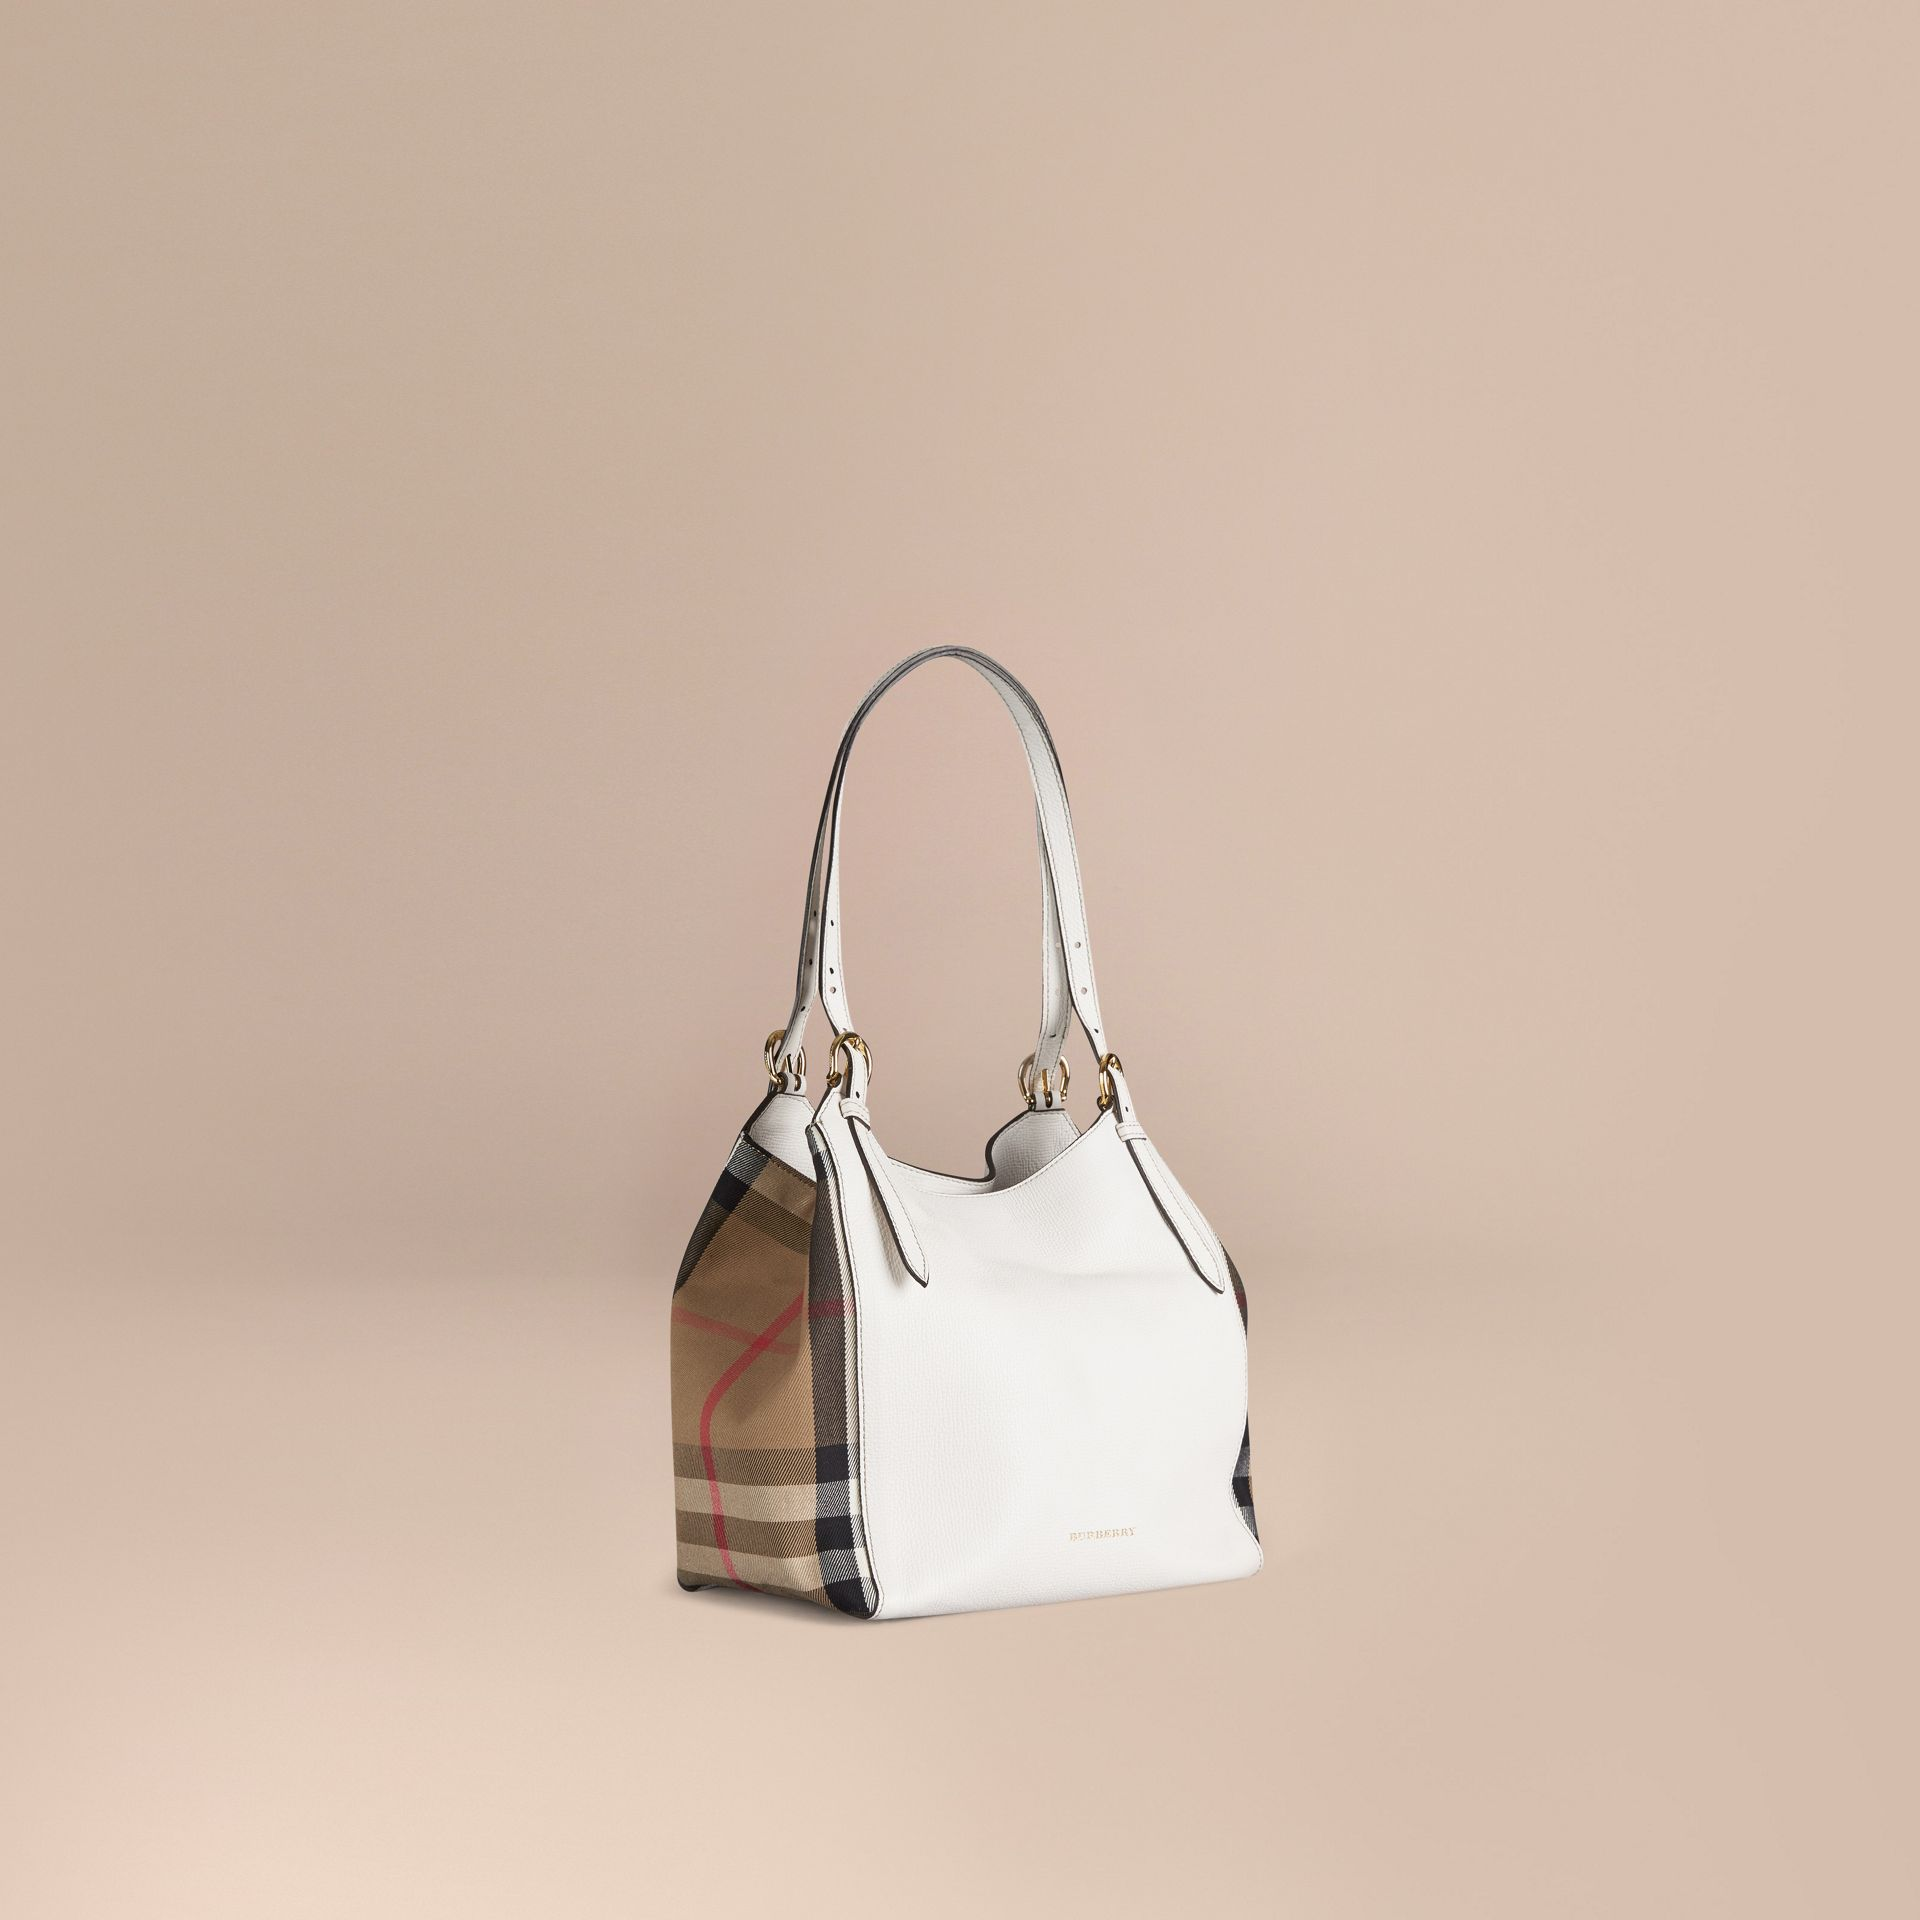 Naturel Petit sac The Canter en cuir avec motif House check Naturel - photo de la galerie 1